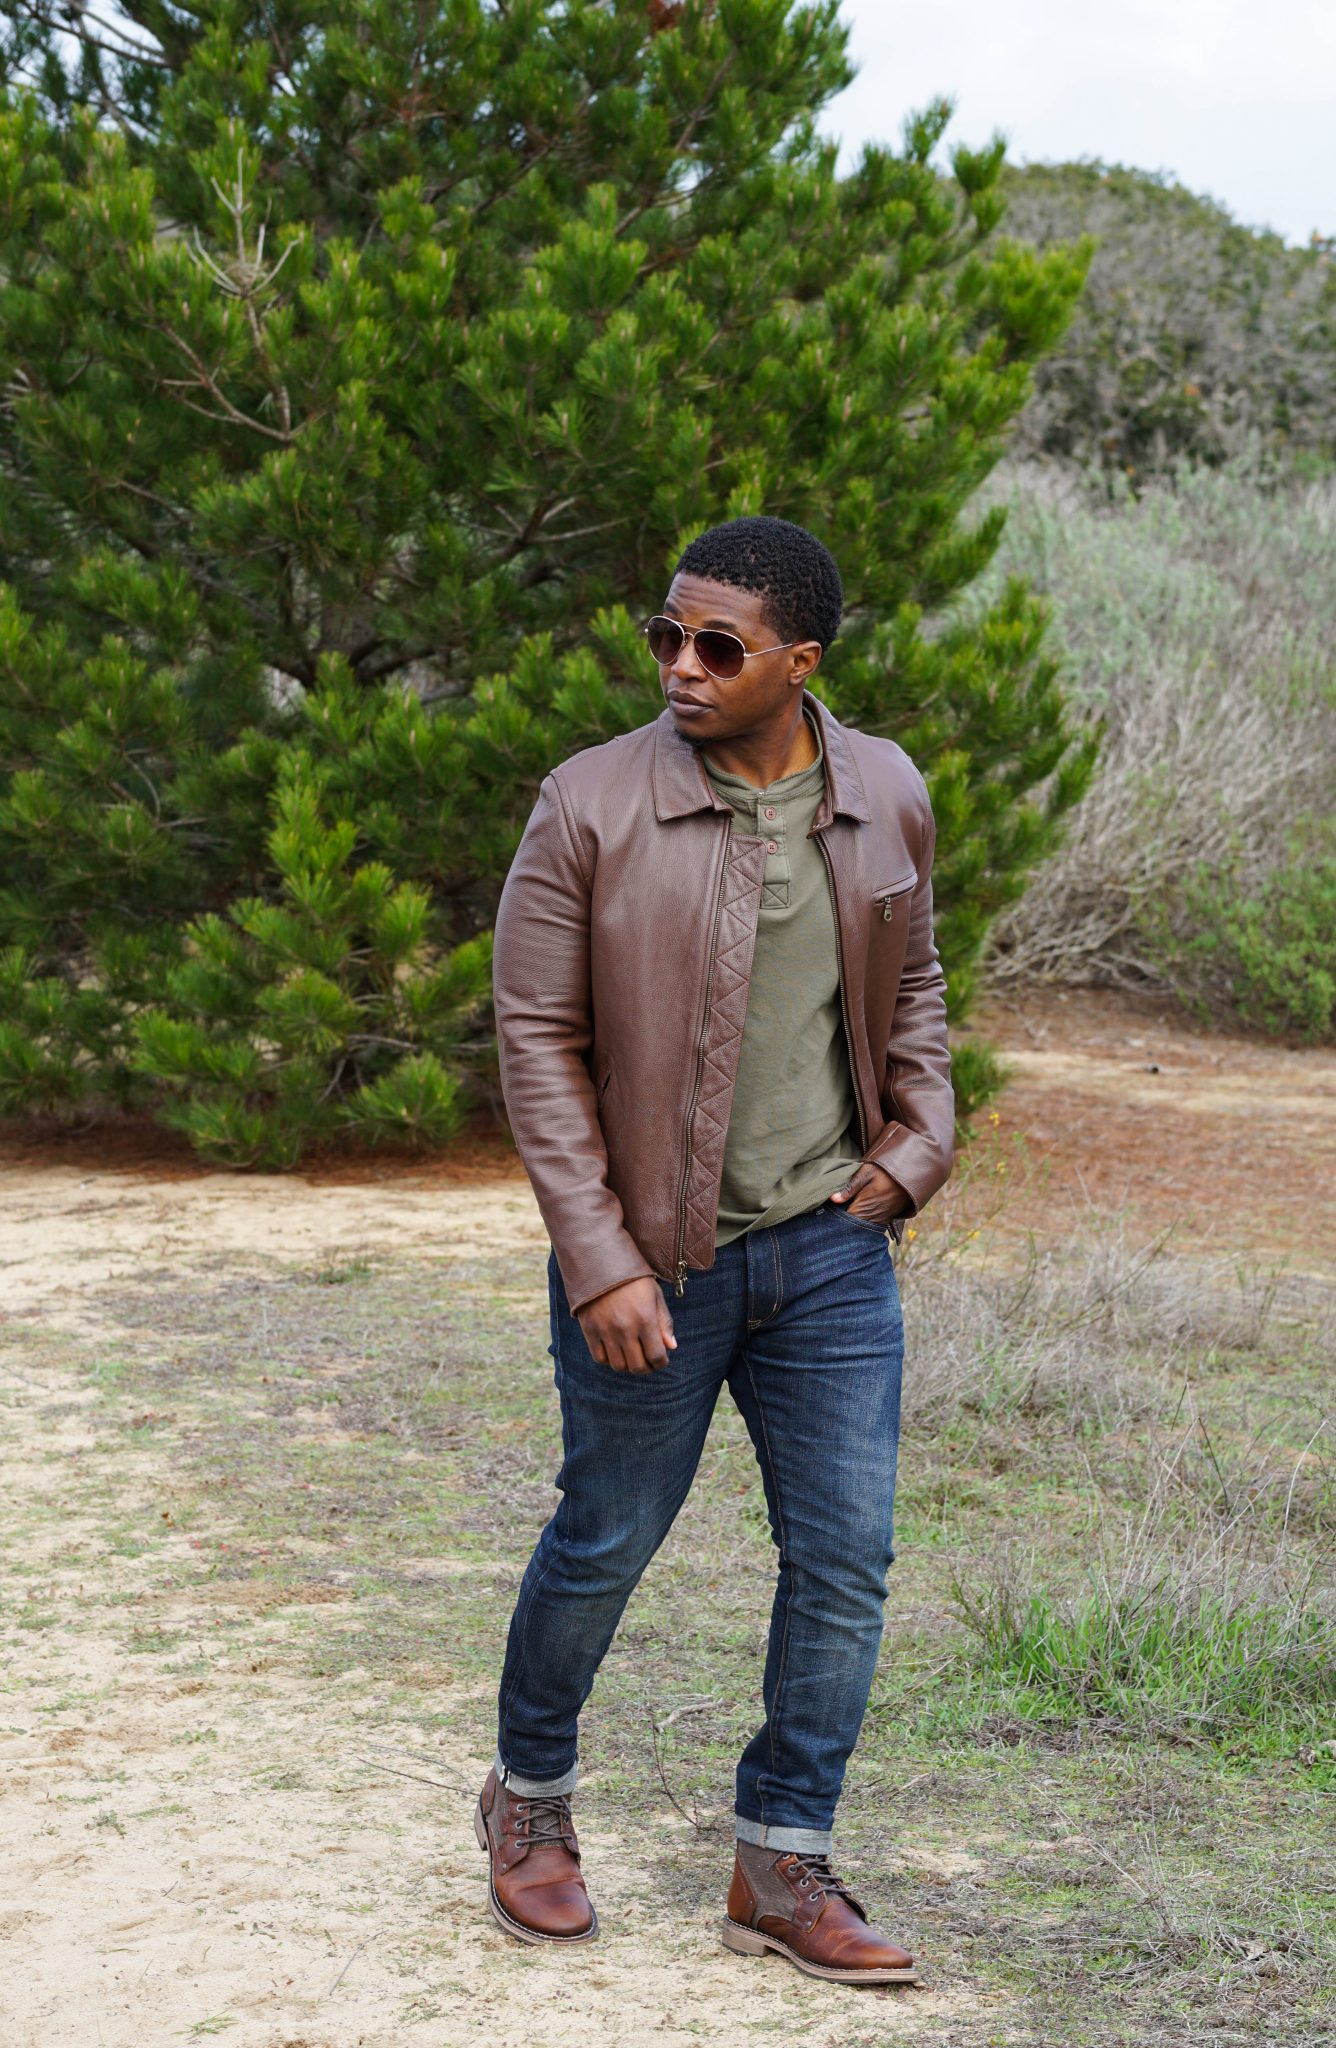 Dapper-Advisor-Cat-Footwear-Abe-Canvas-Boot-brown-leather-jacket-puppy-dog-shades-henley-black-man-african-american